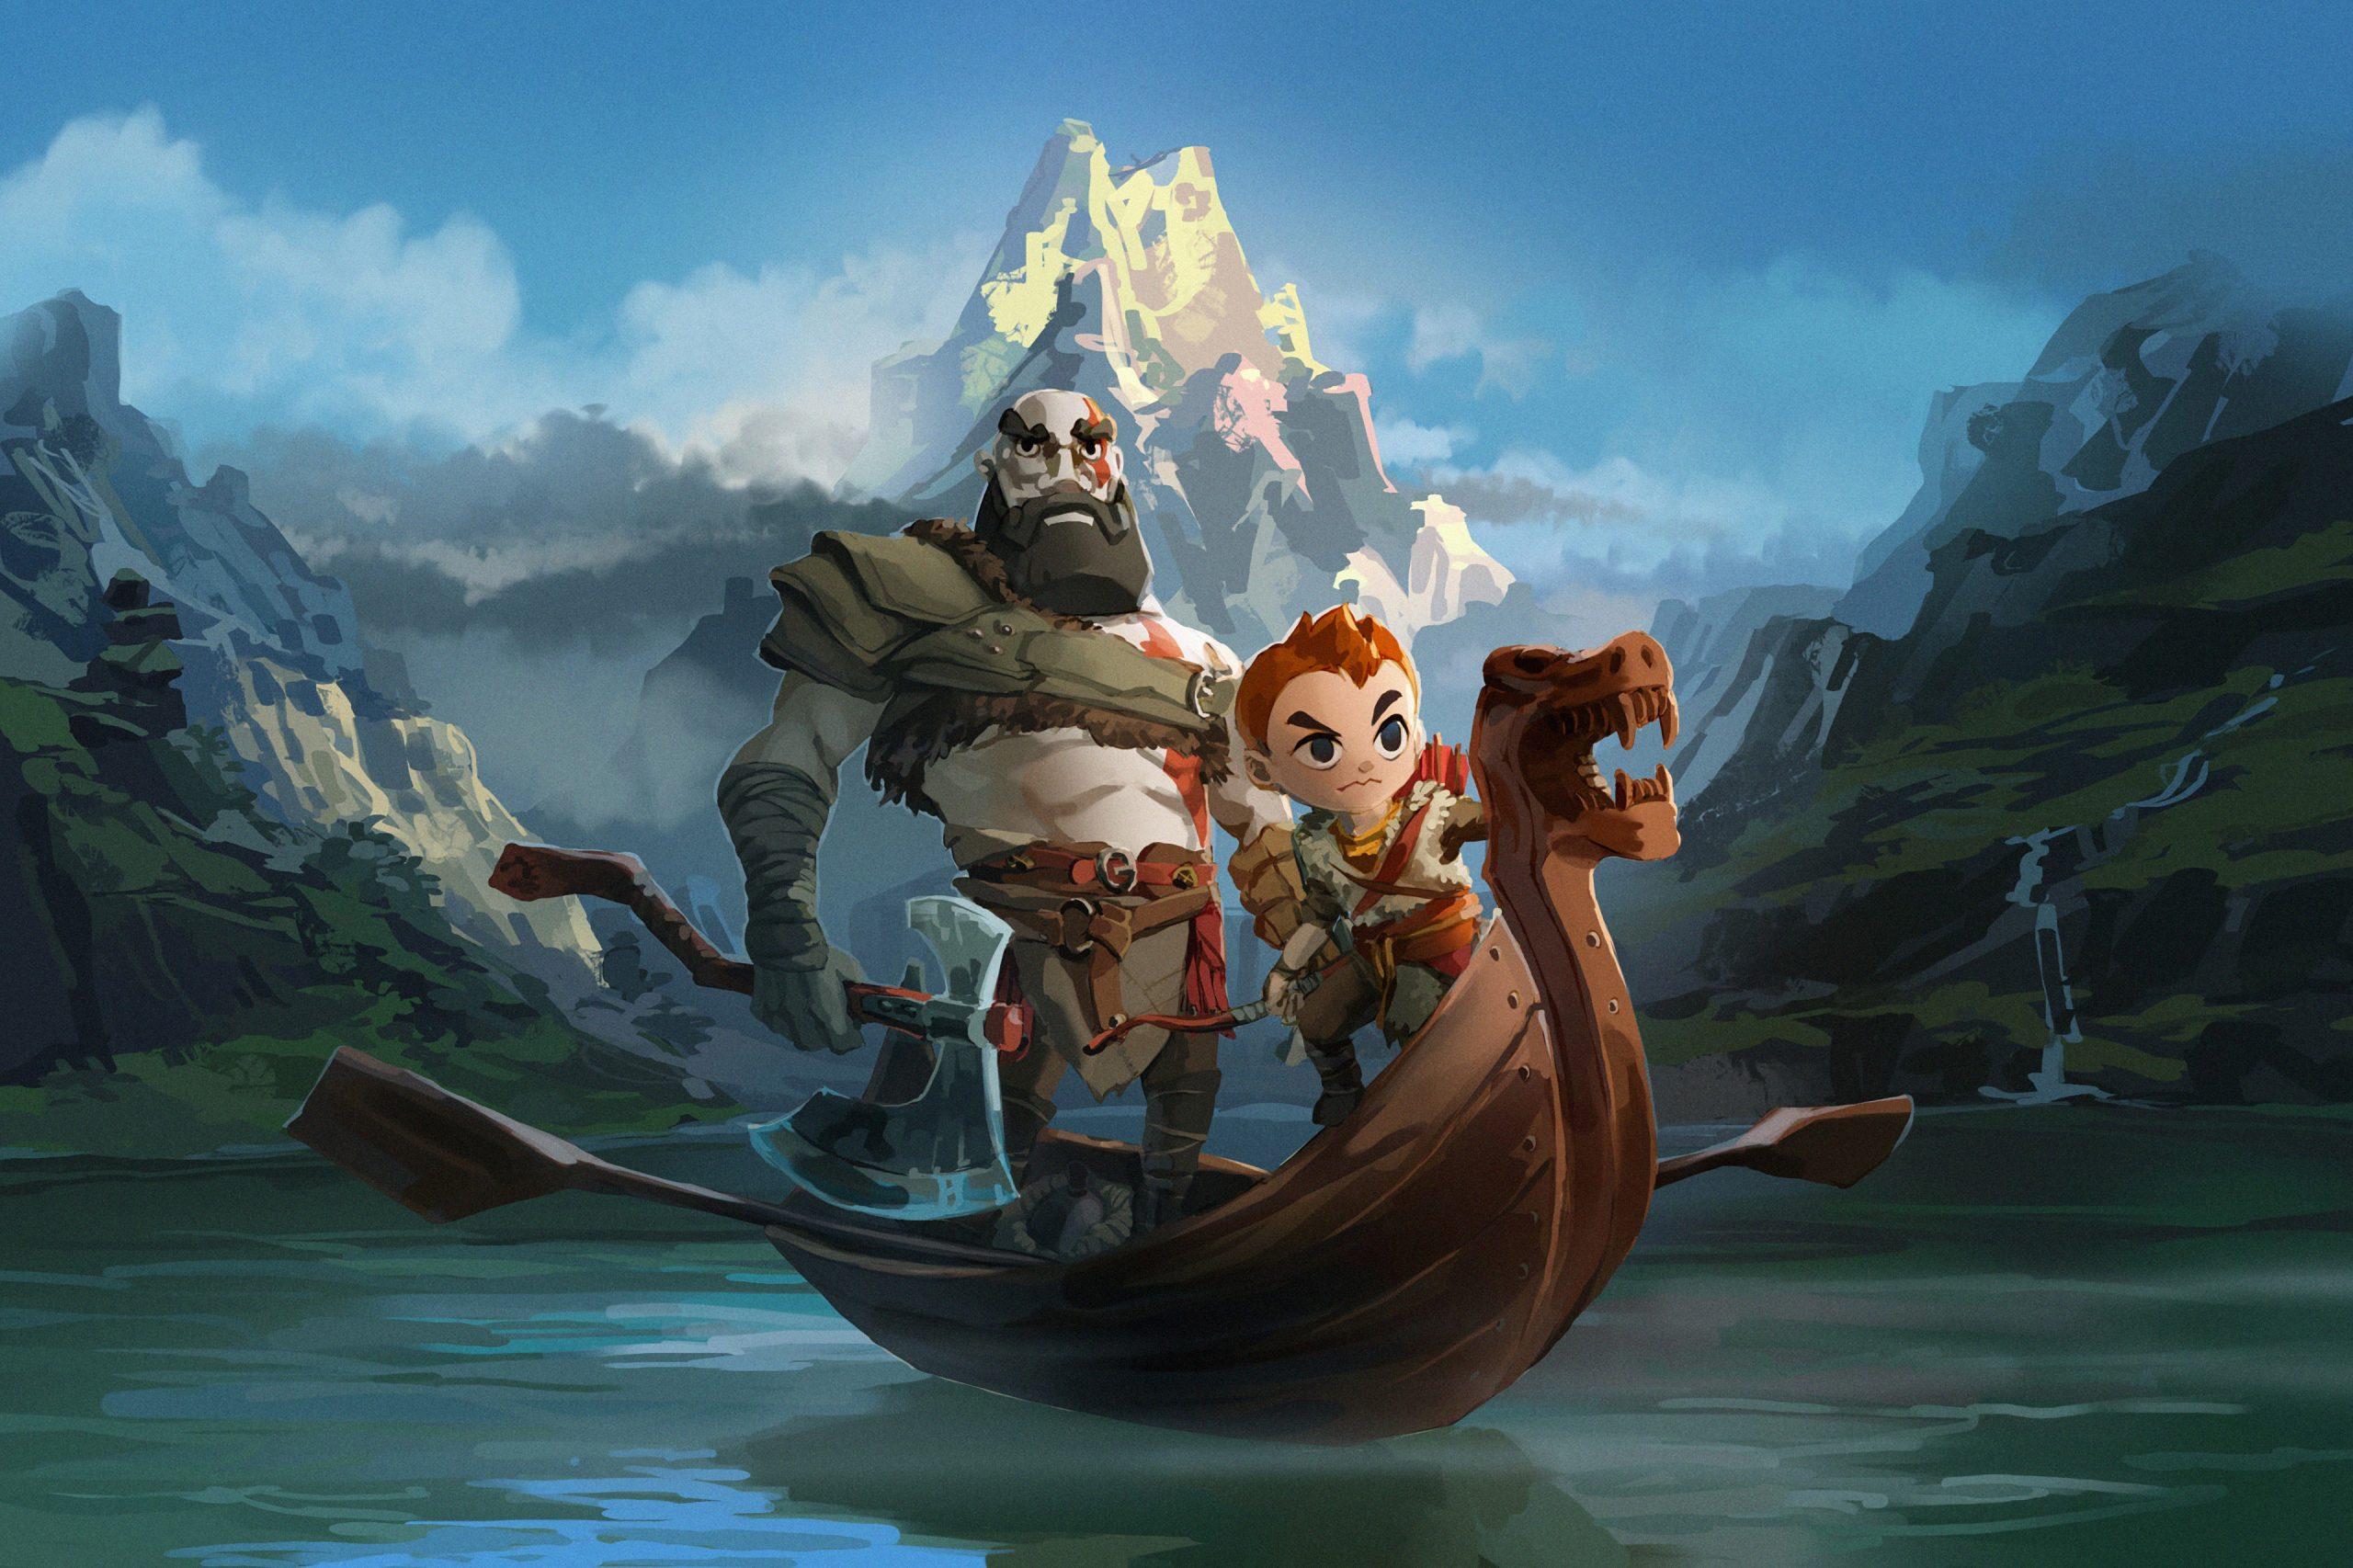 God Of War Backgrounds, Pictures, Images